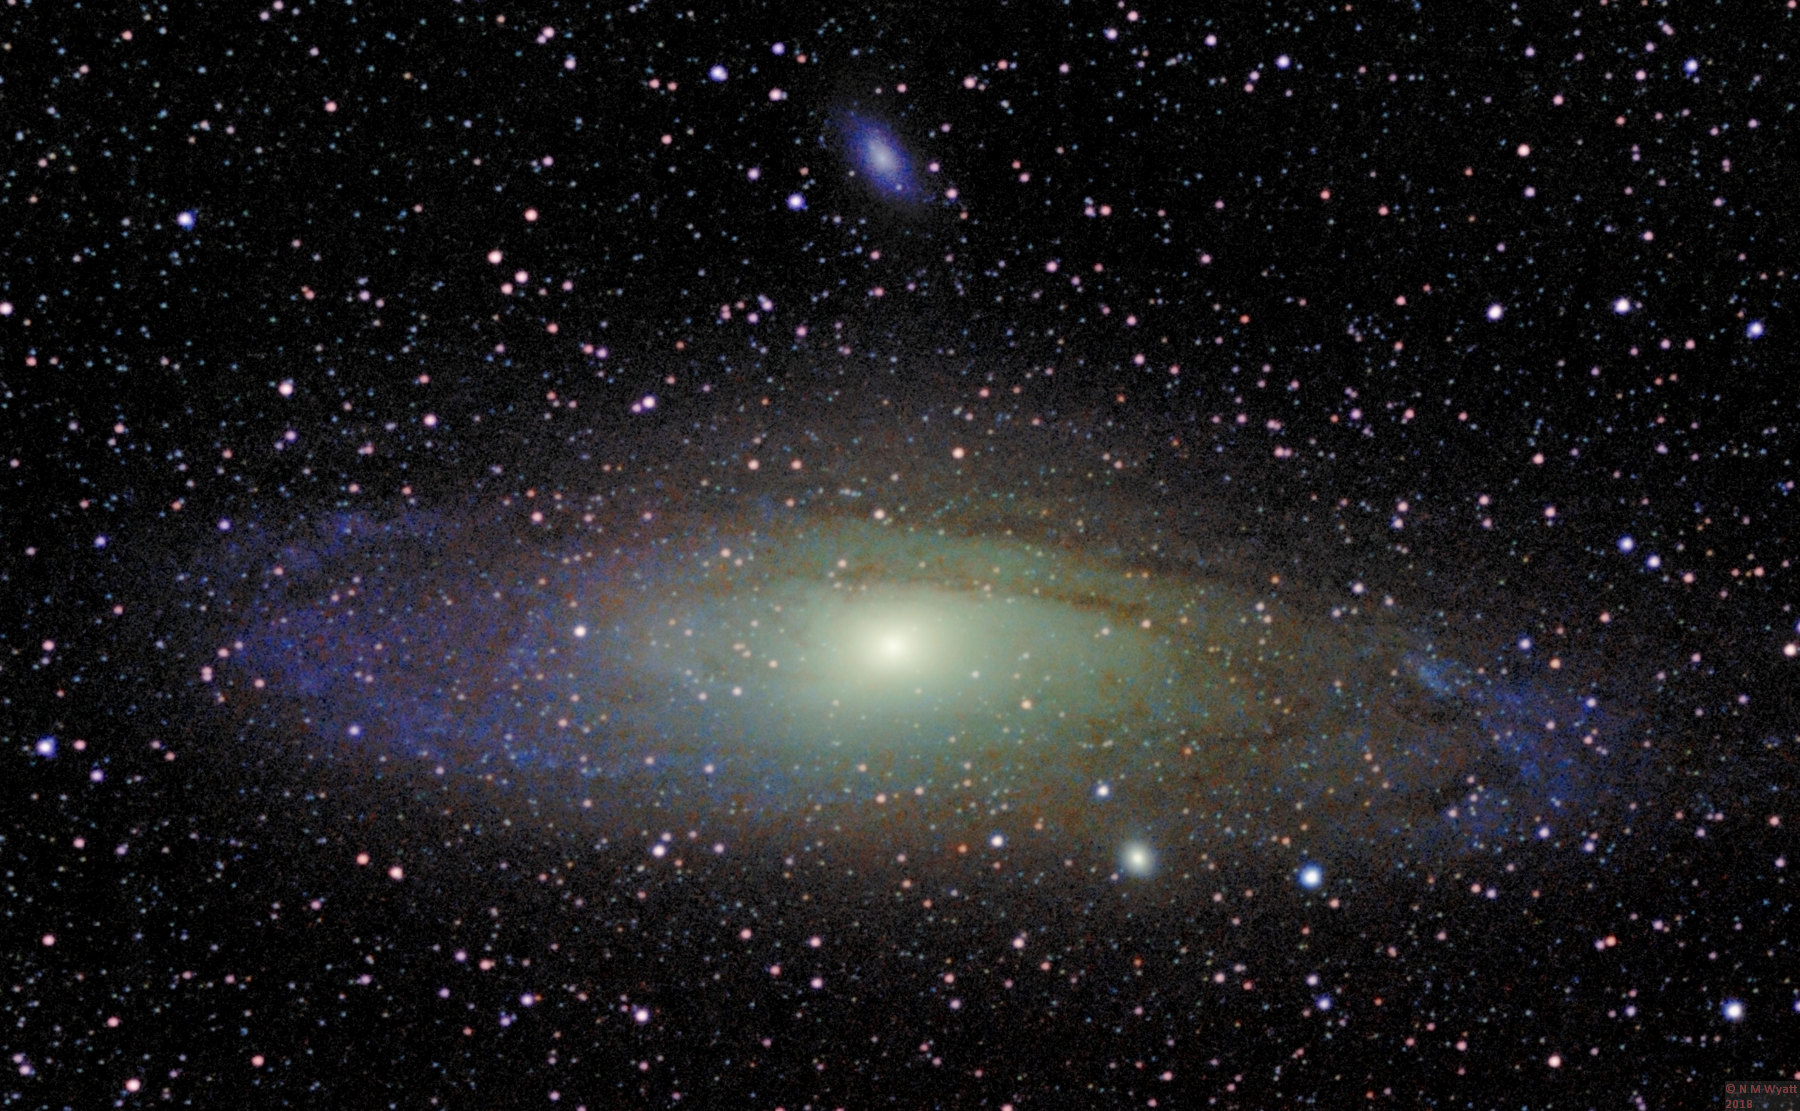 Andromeda Galaxy M31, with dwarf galaxies M32 and M110